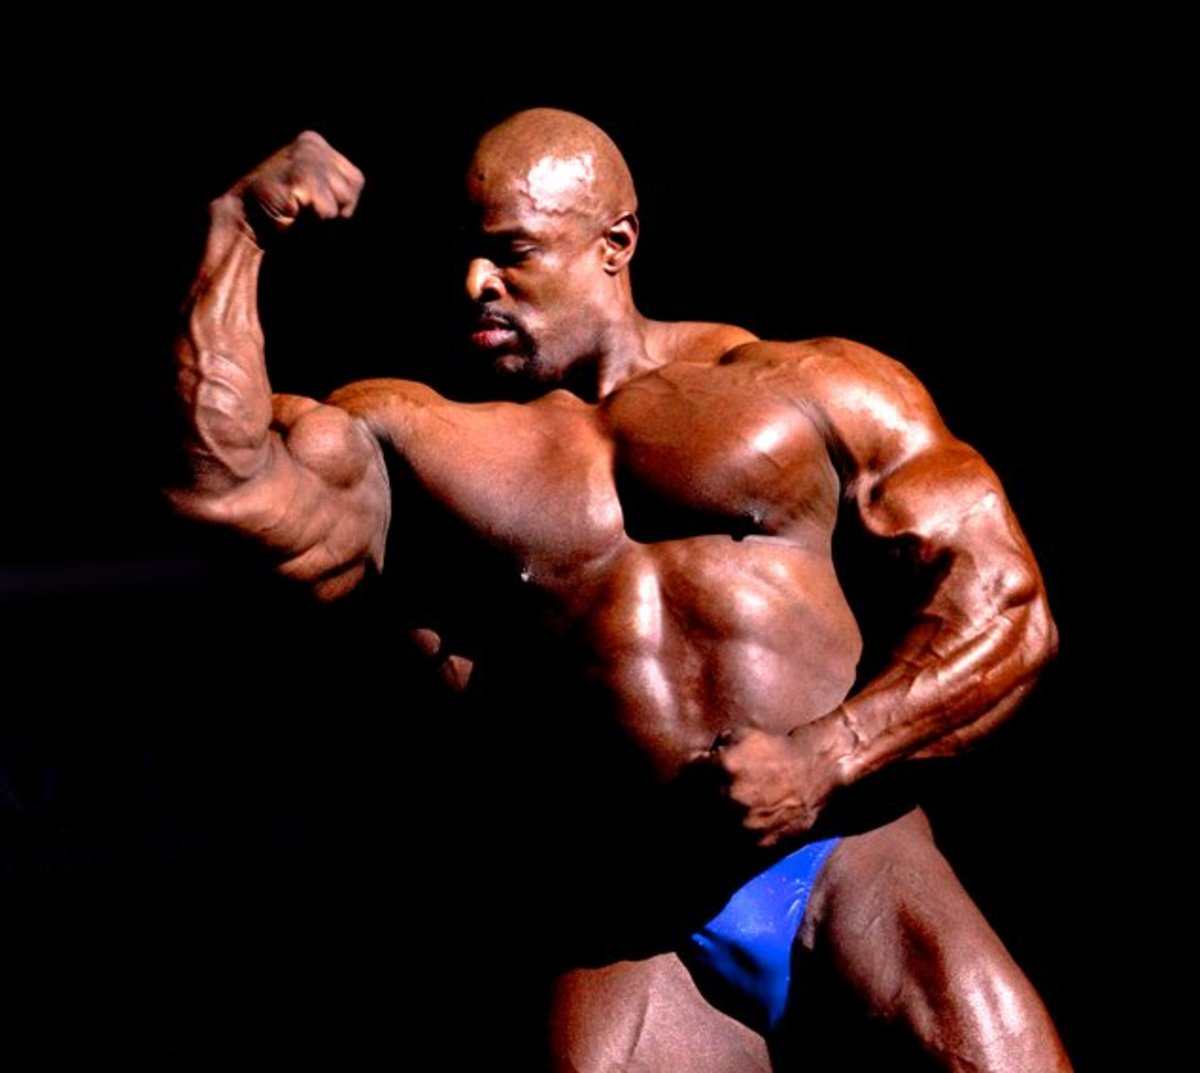 While this body may look great on a pro body builder, you may be out of place if you are a 9-5 office worker carrying around a freakishly big body. In picture is Ronnie Coleman posing at Mr. Olympia 2009 in Melbourne, Australia.